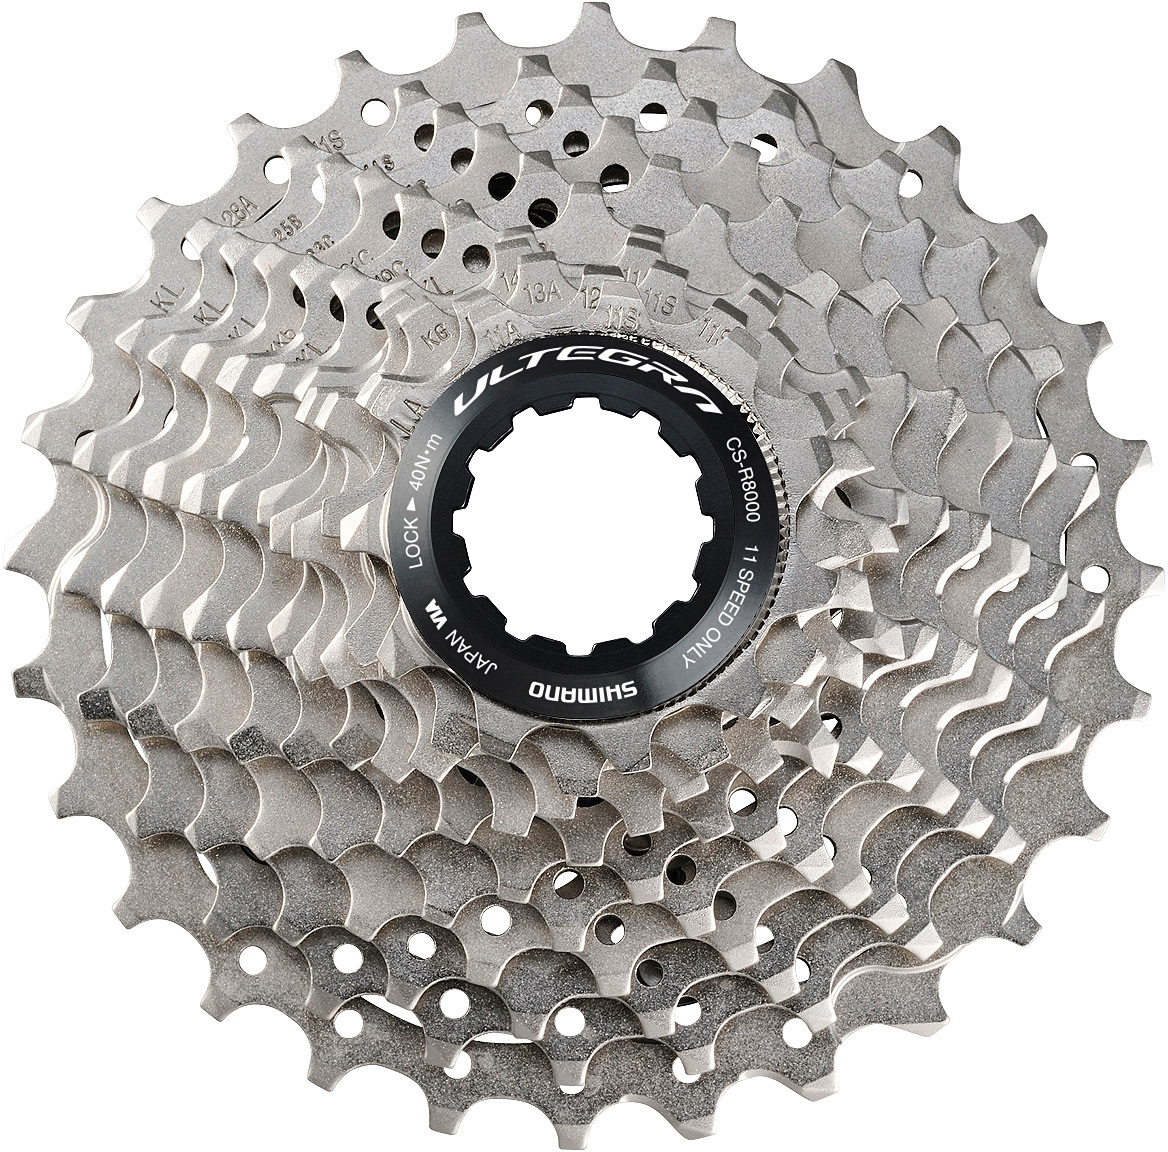 CS-R8000 Ultegra 11-speed cassette 14-28